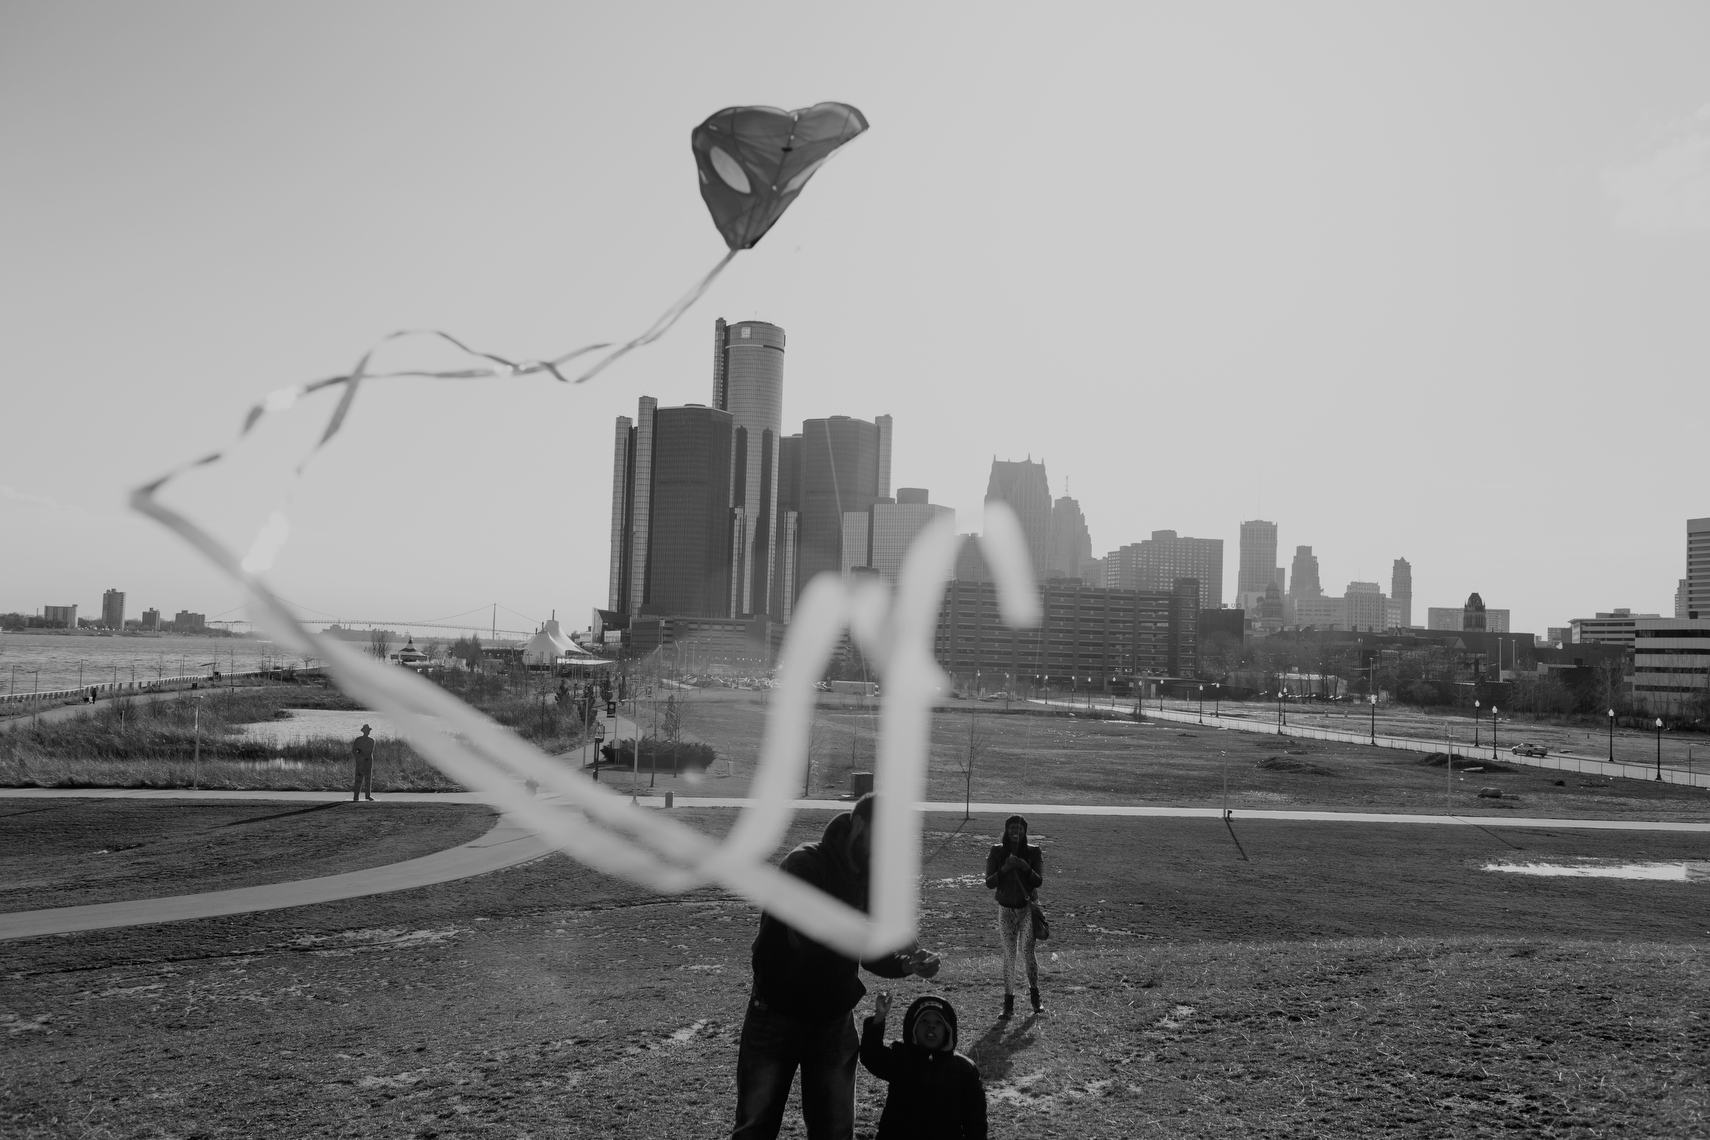 DAY77_KITE_23April102016.JPG